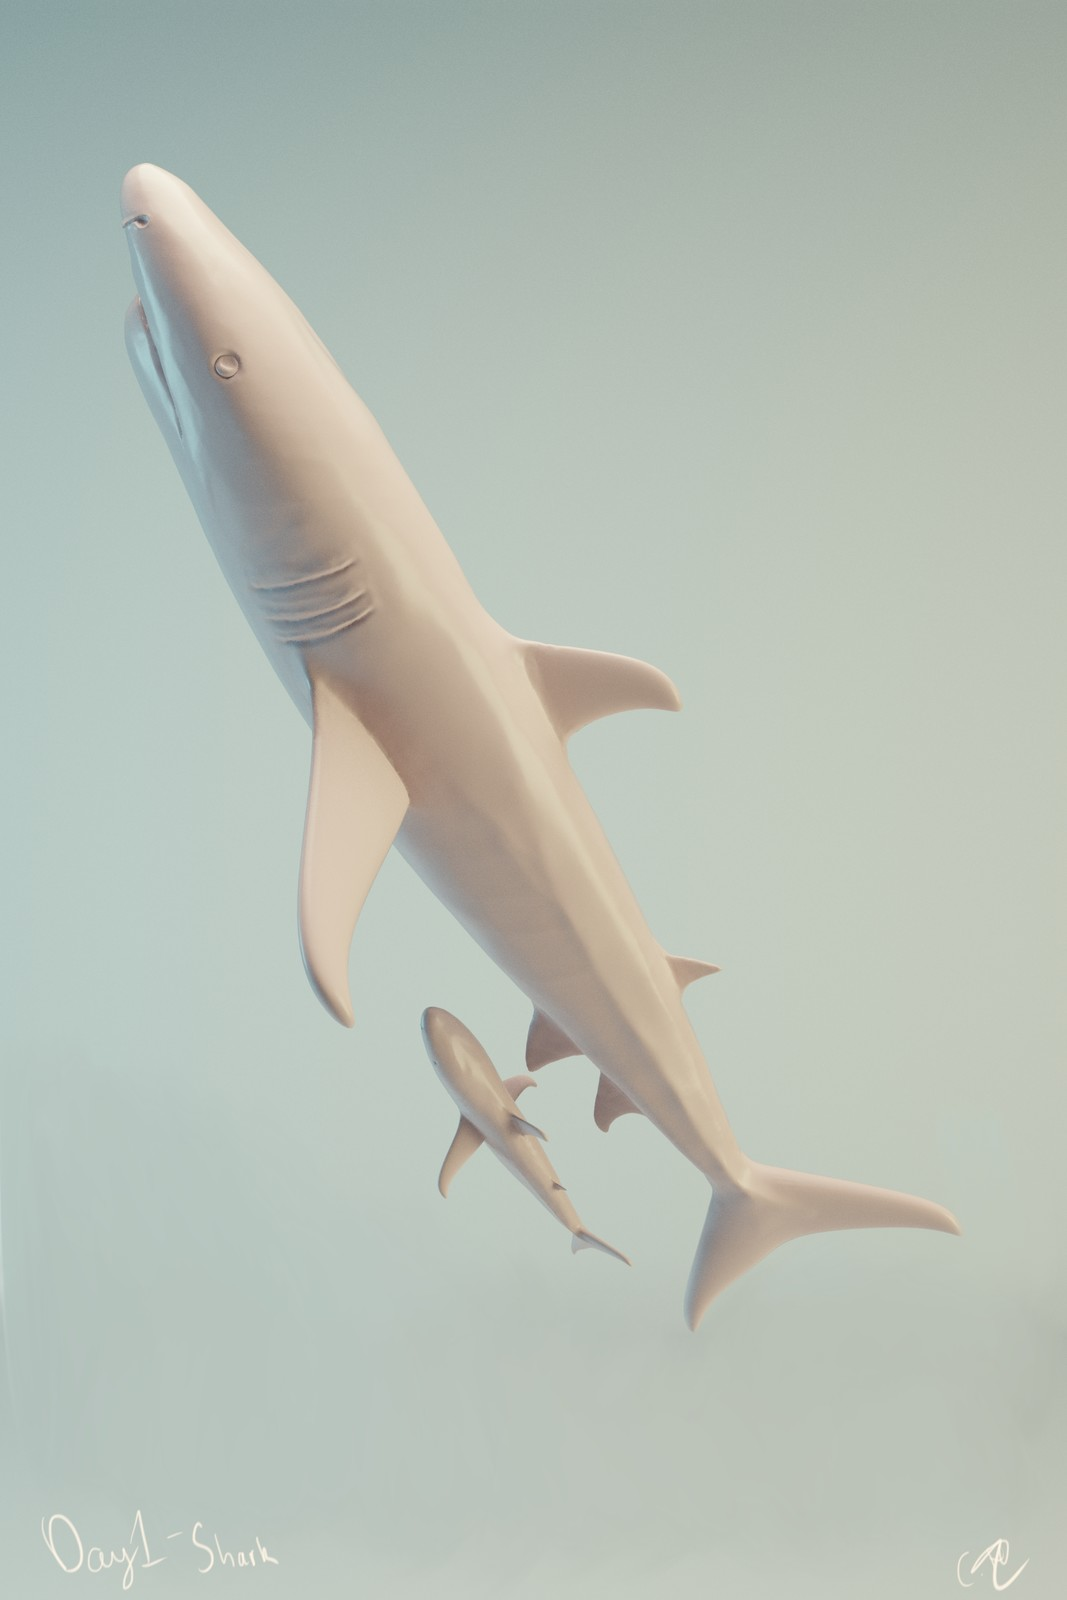 #SculptJanuary Day 1 - Shark